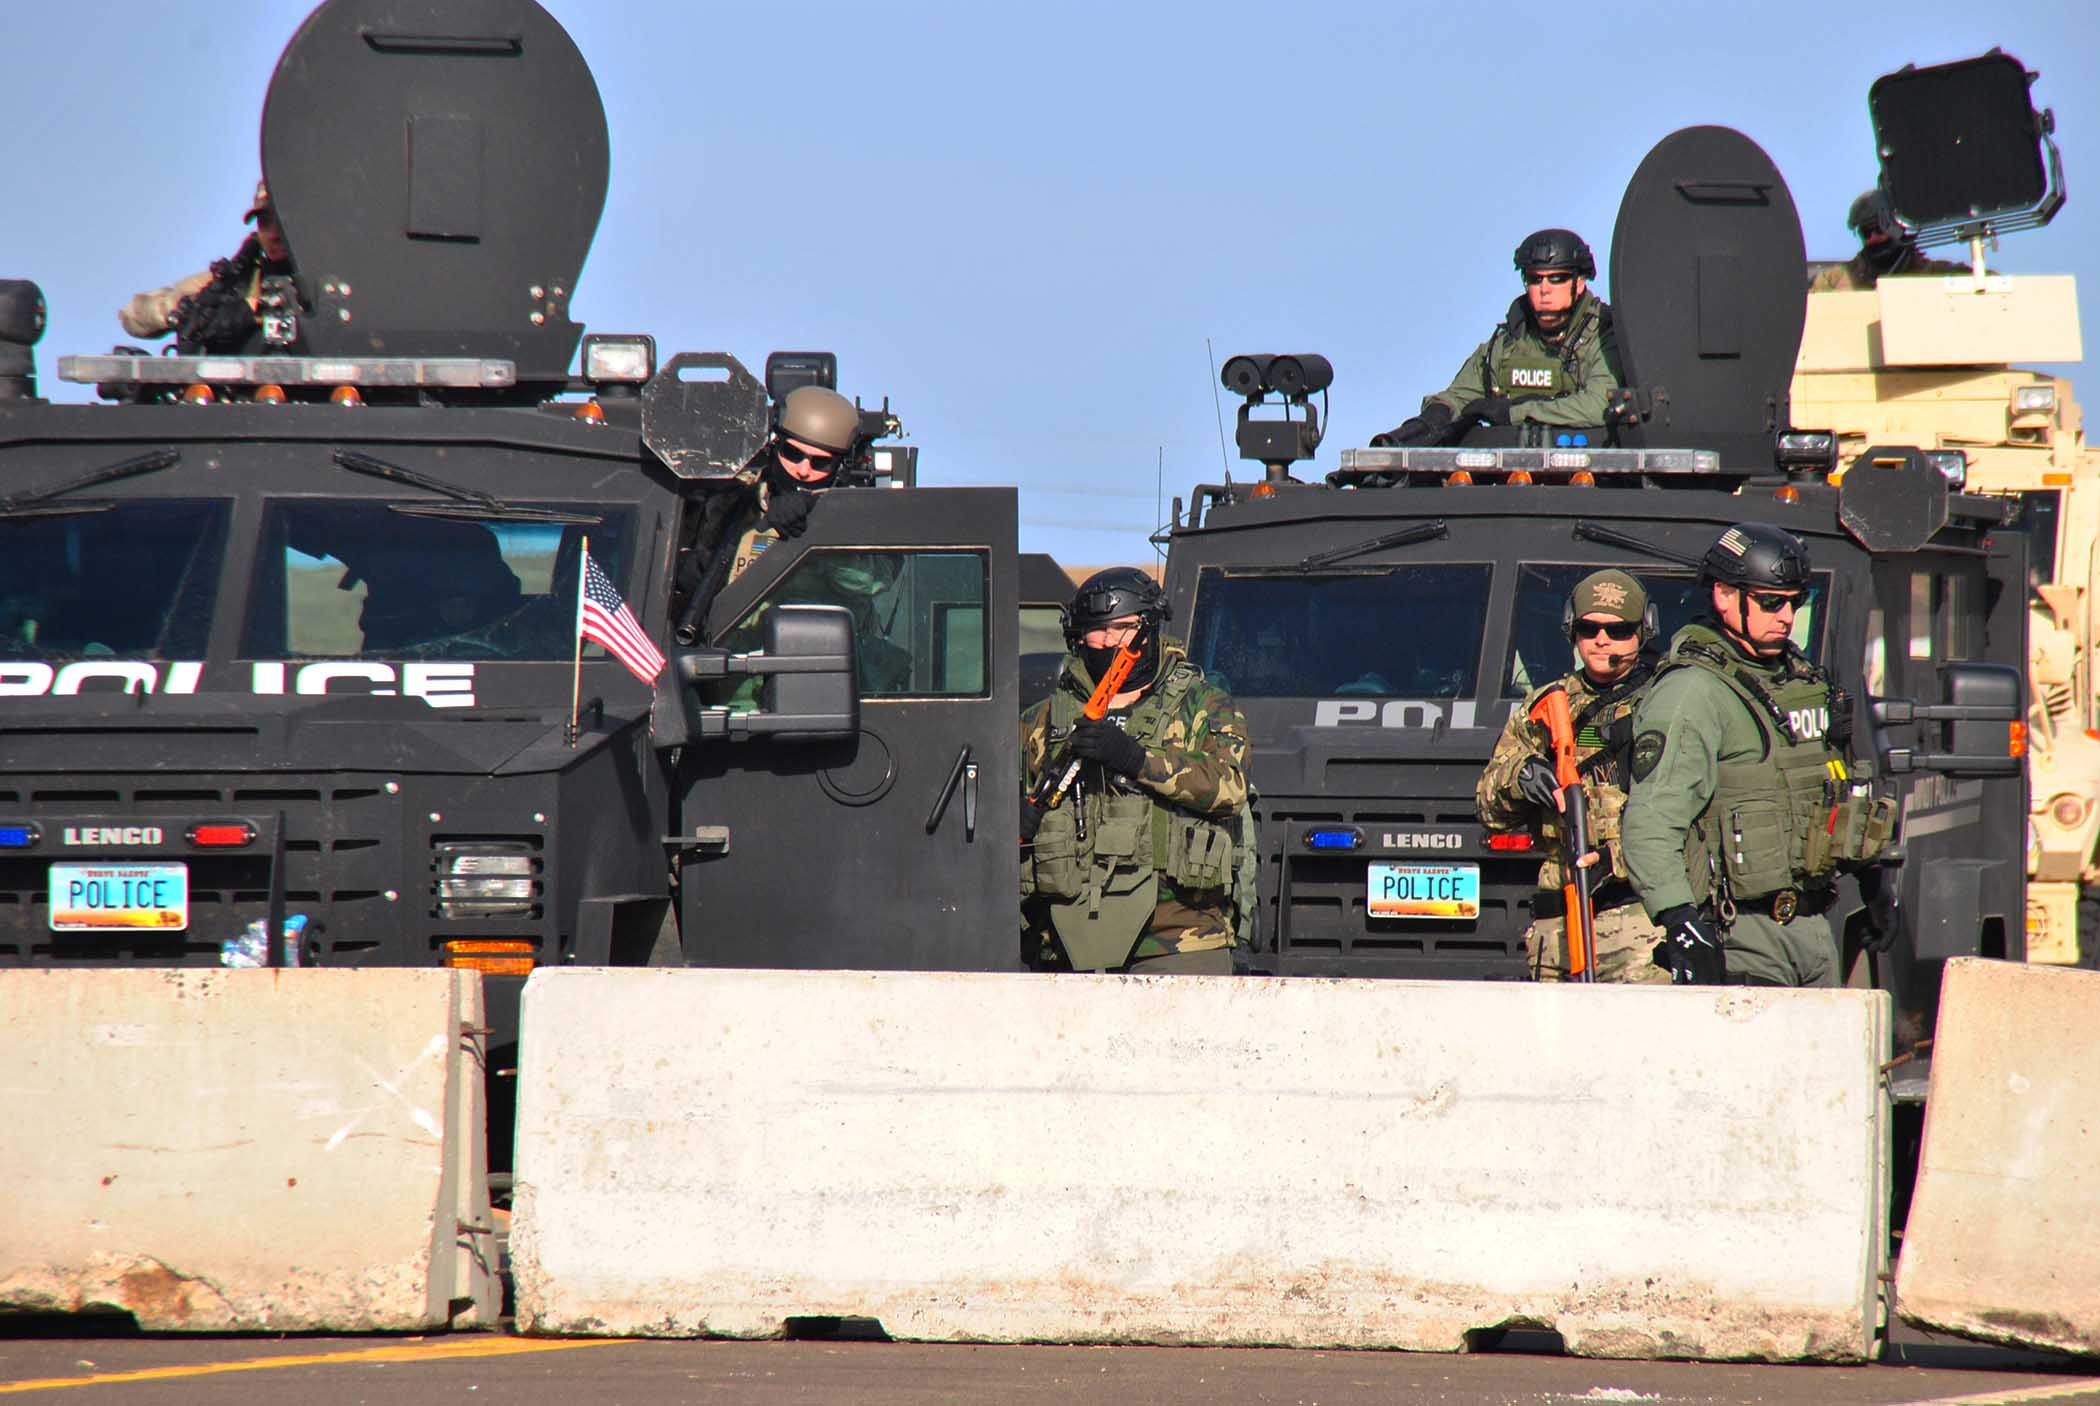 Law enforcement from four states standoff against activistts from and supporting Standing Rock - photo by C.S. Hagen